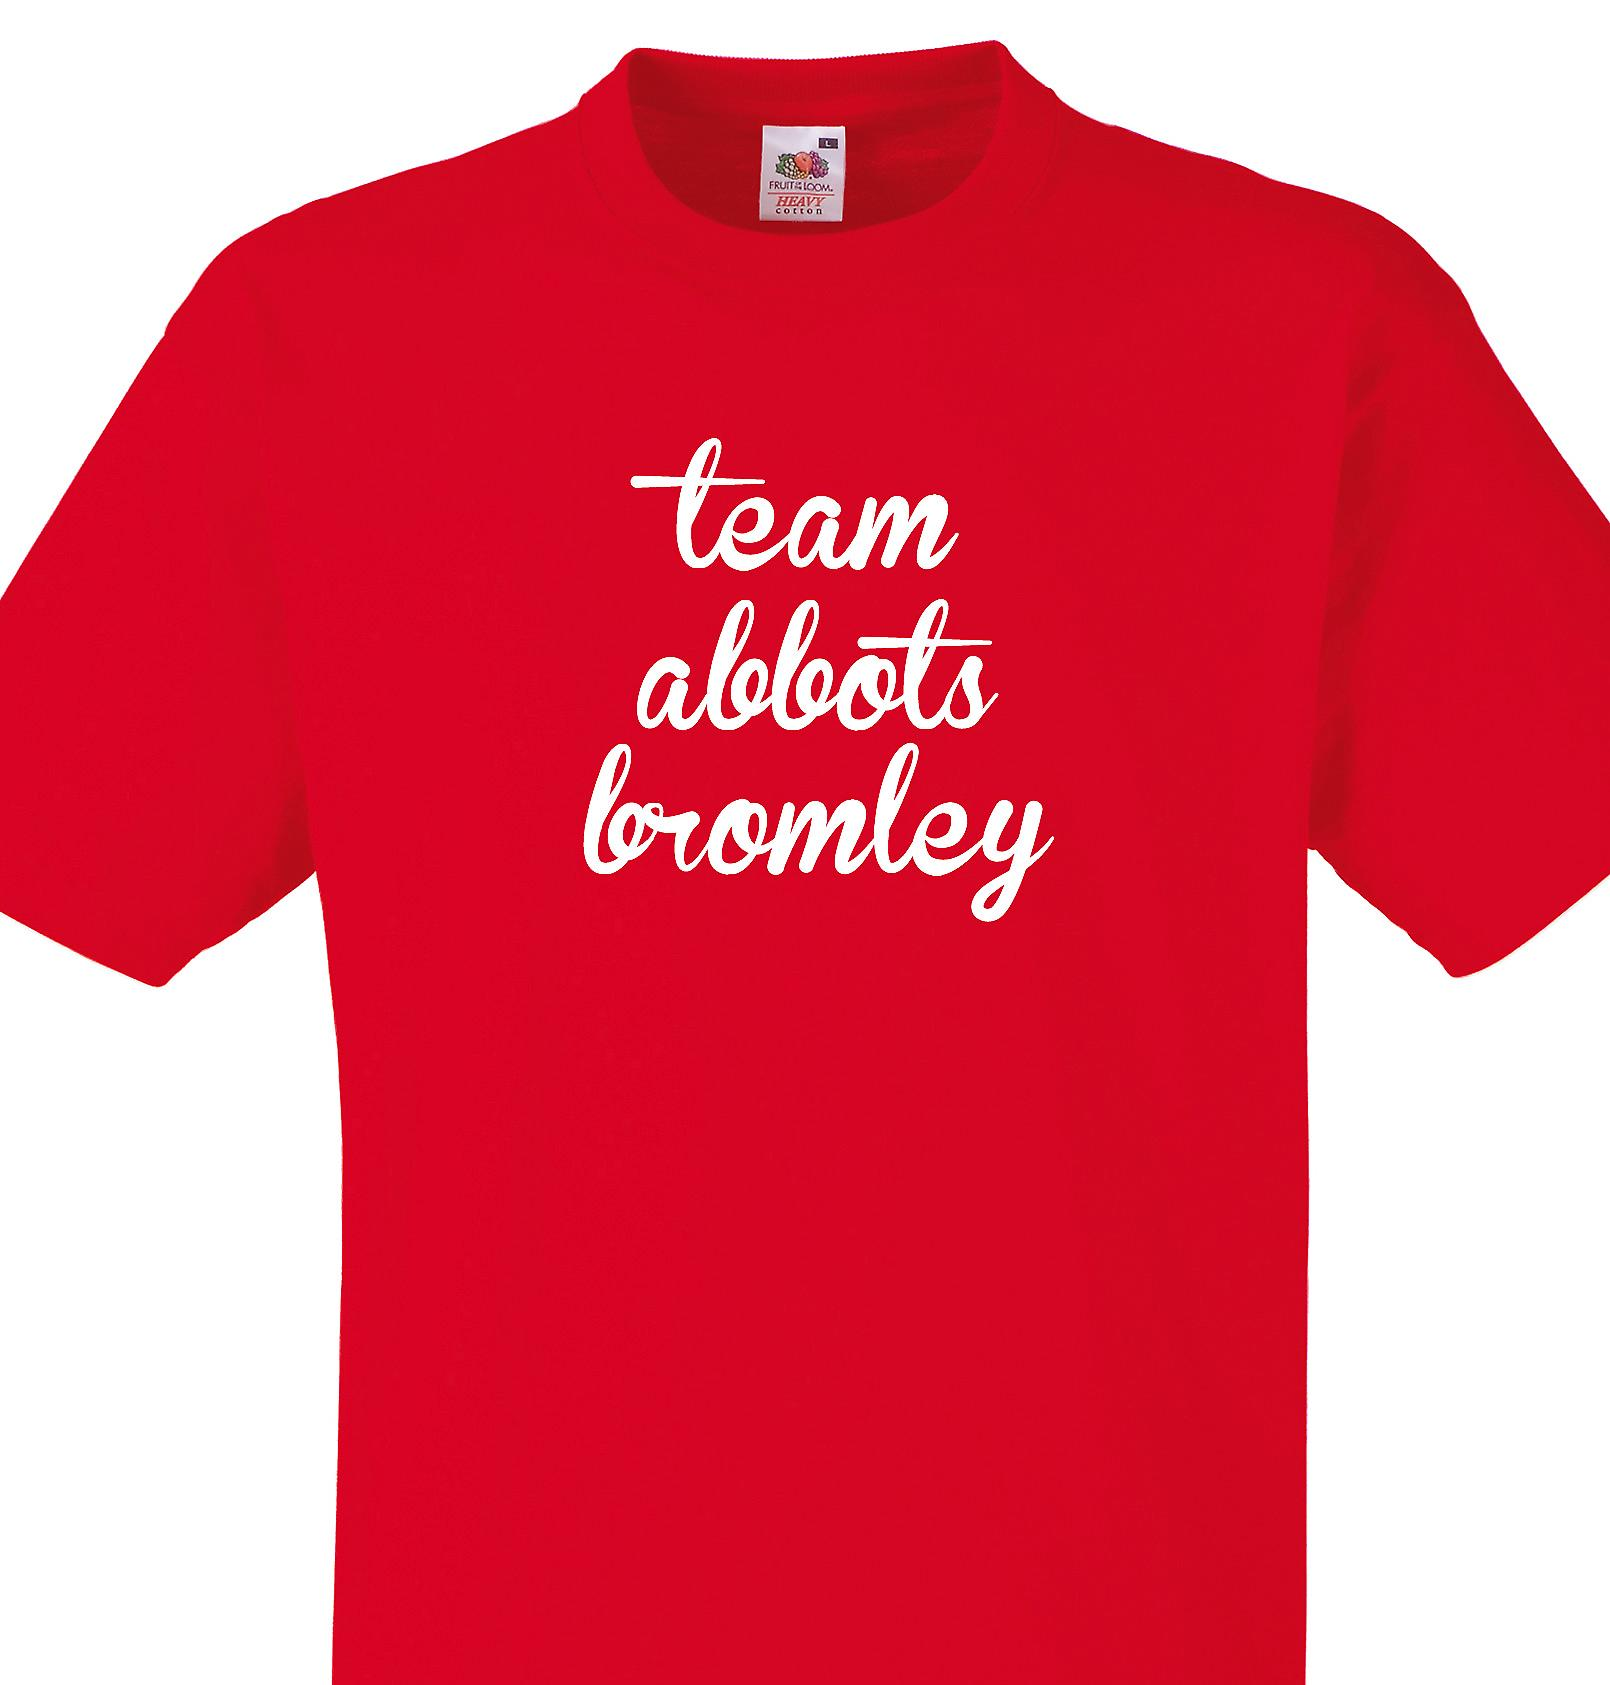 Team Abbots bromley Red T shirt